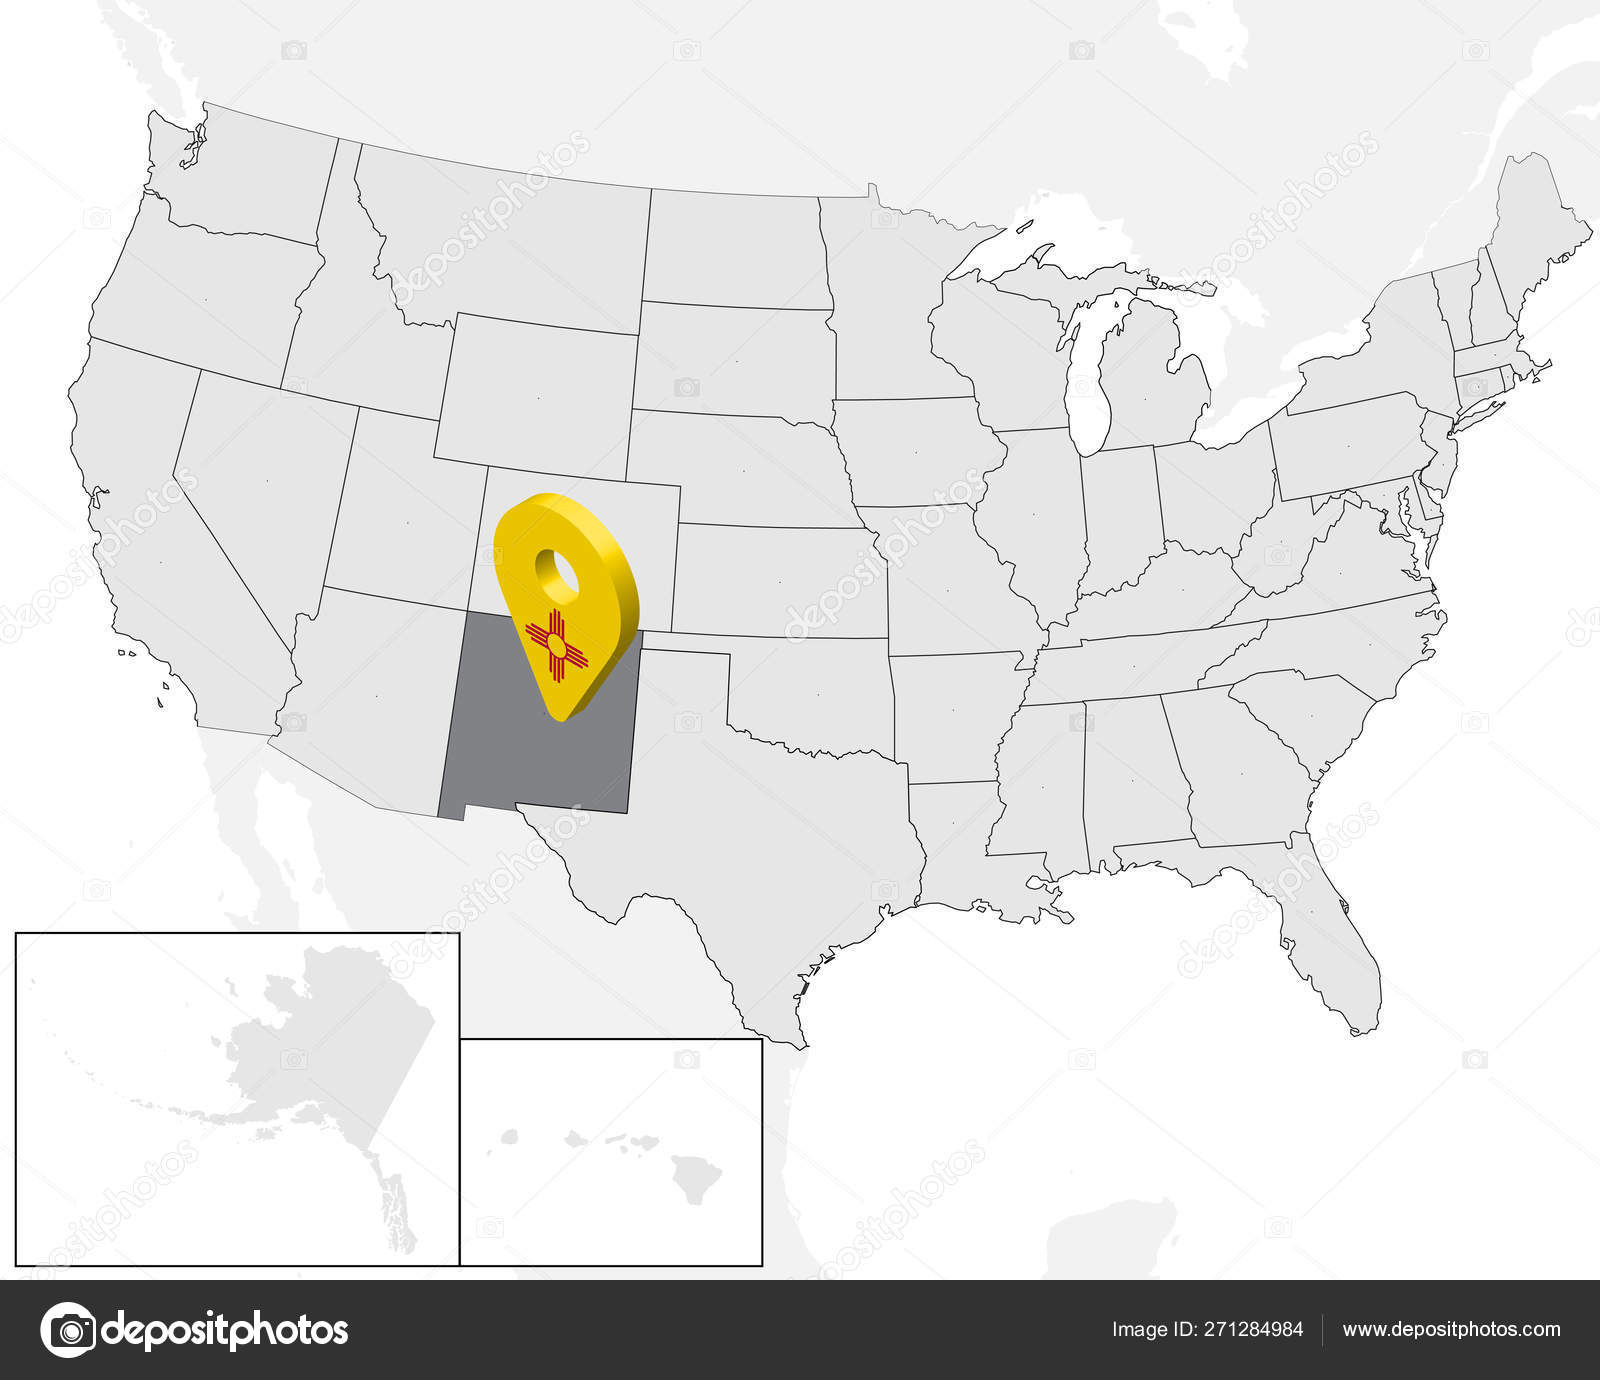 Location Map of State New Mexico on map USA. 3d State New ...